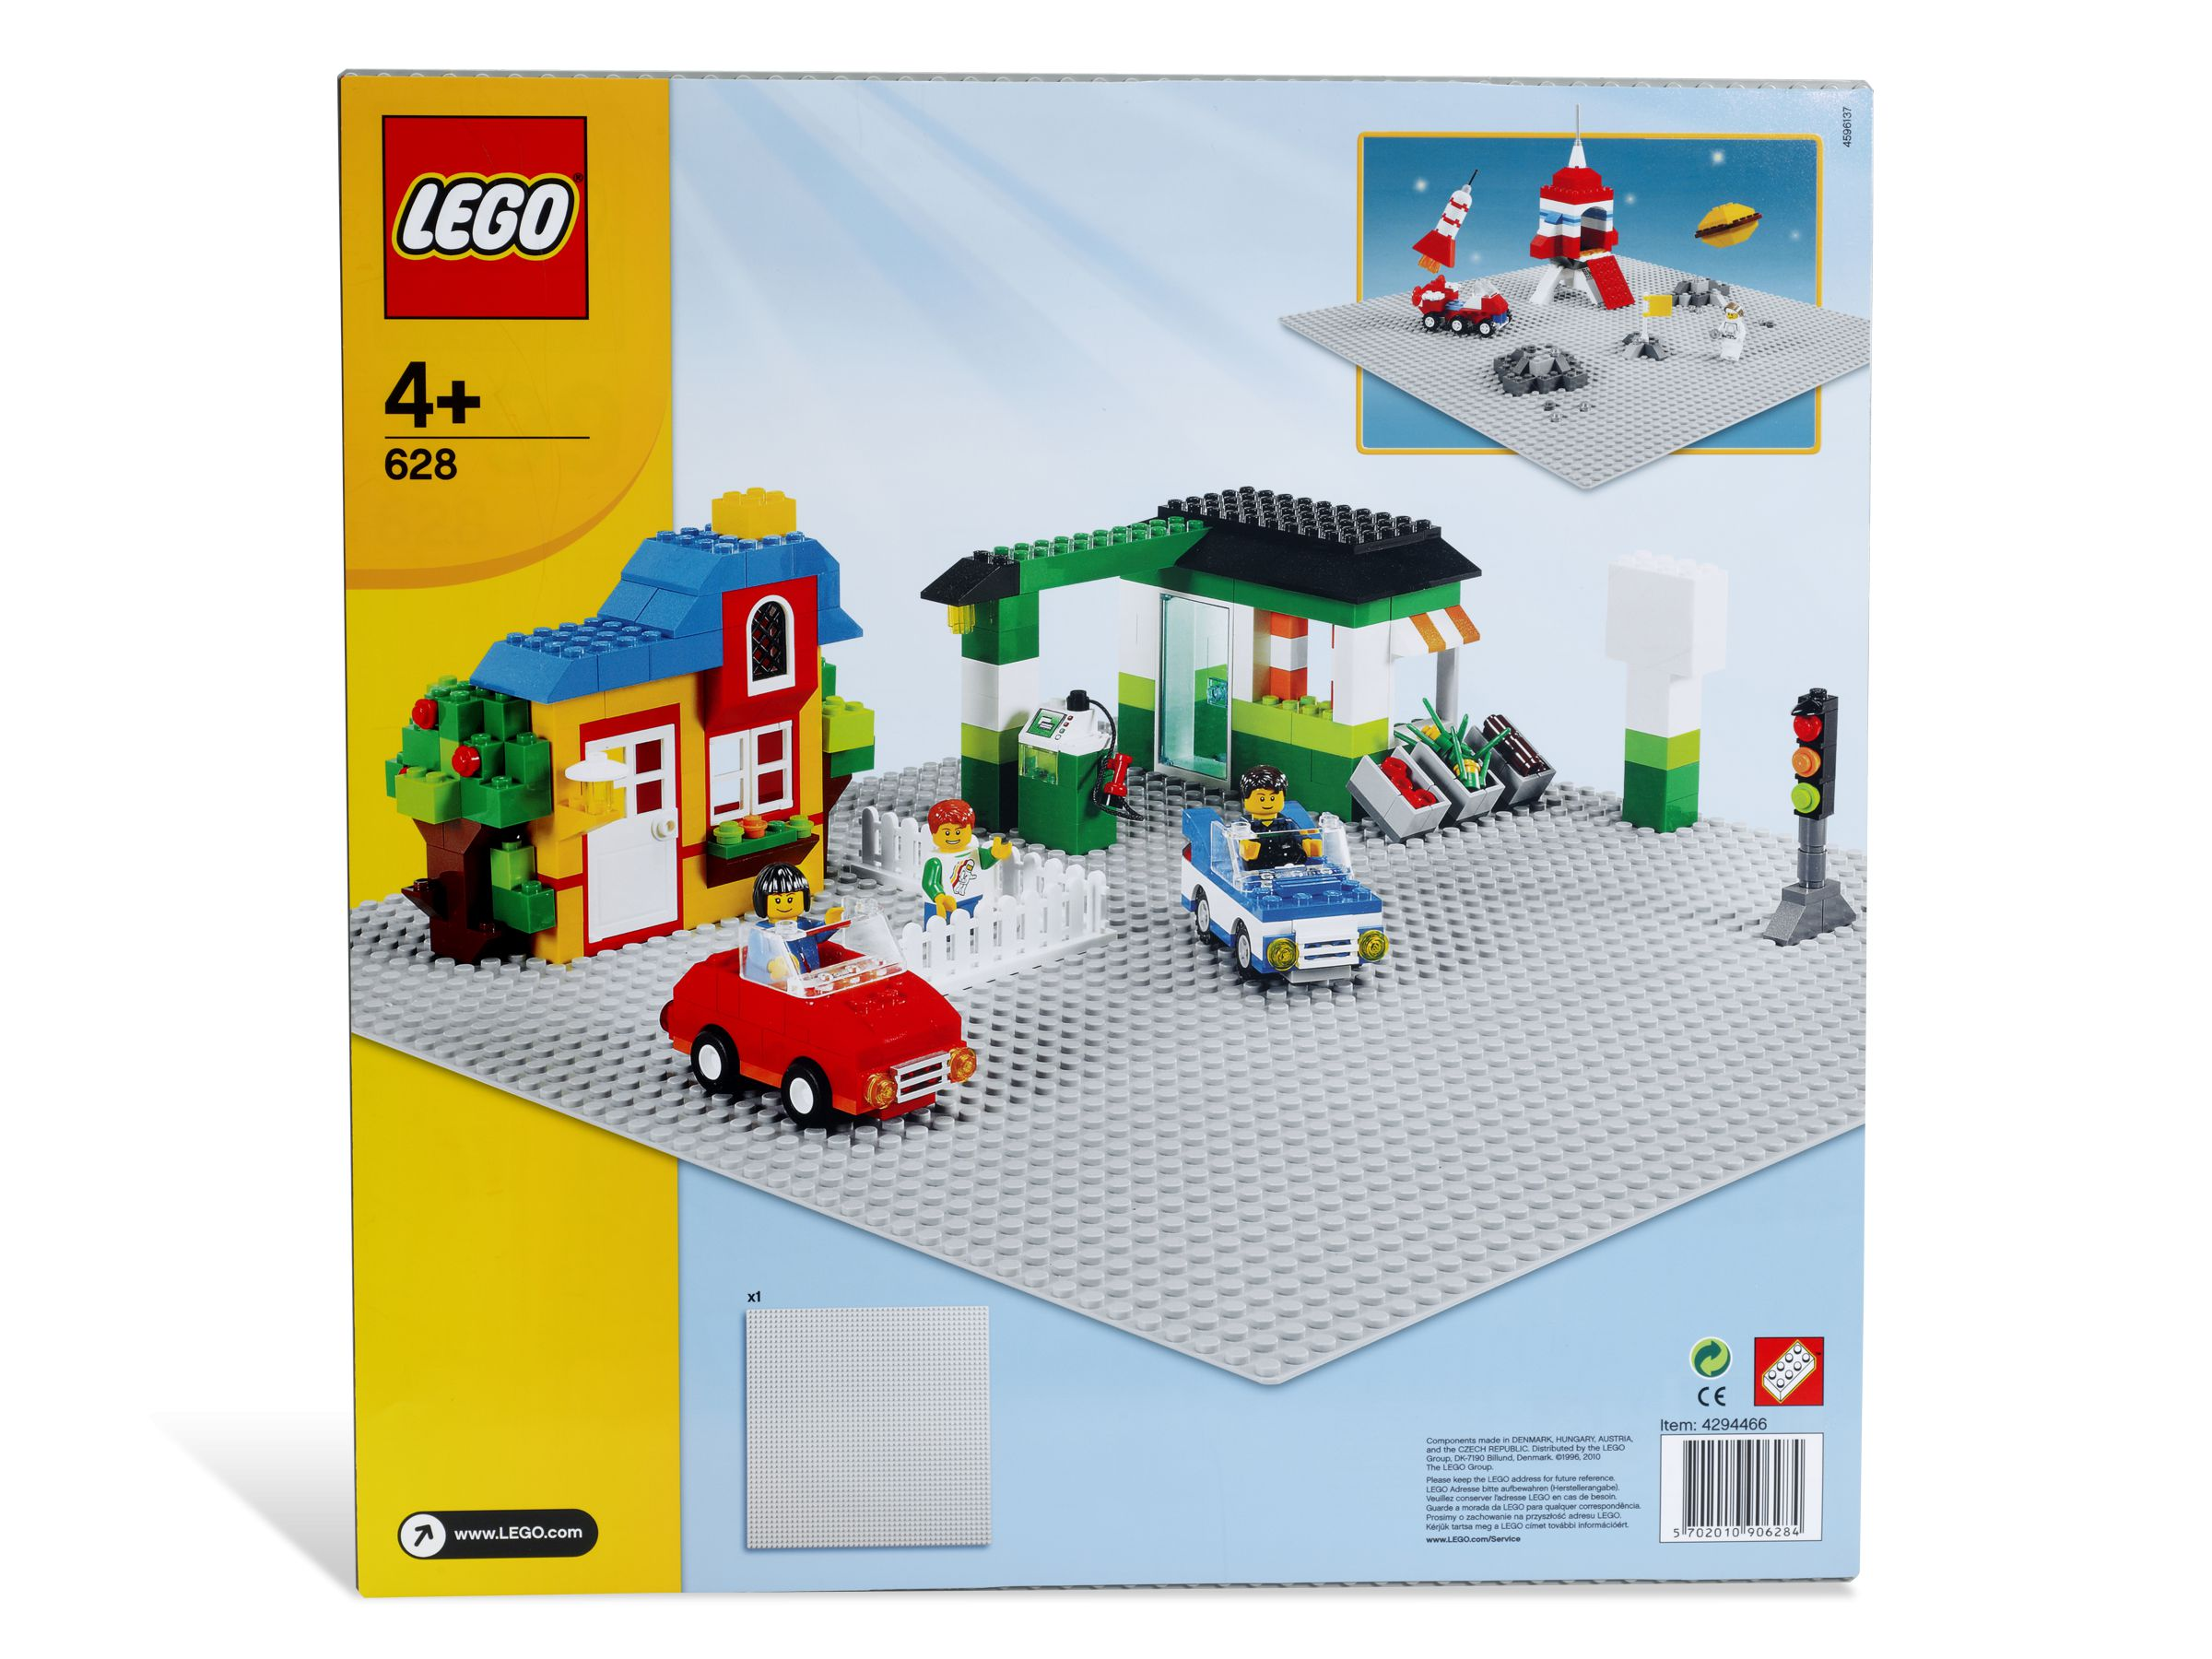 LEGO Bricks and More 628 48x48 Bauplatte Asphalt LEGO_628.jpg